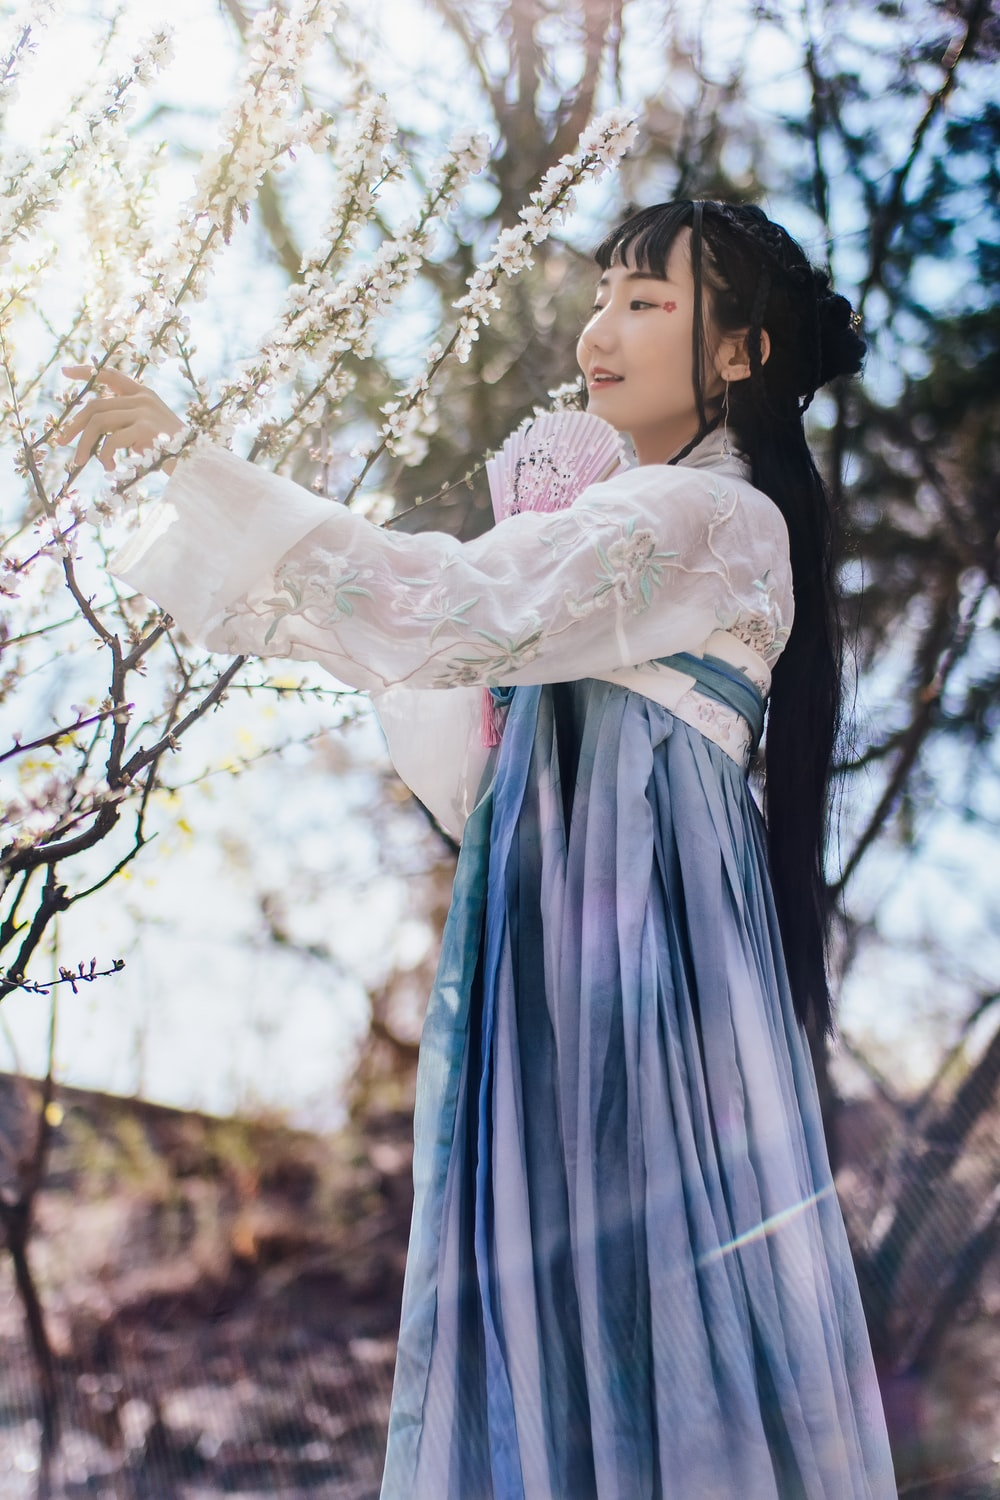 woman in blue and white lace dress near flowering tree